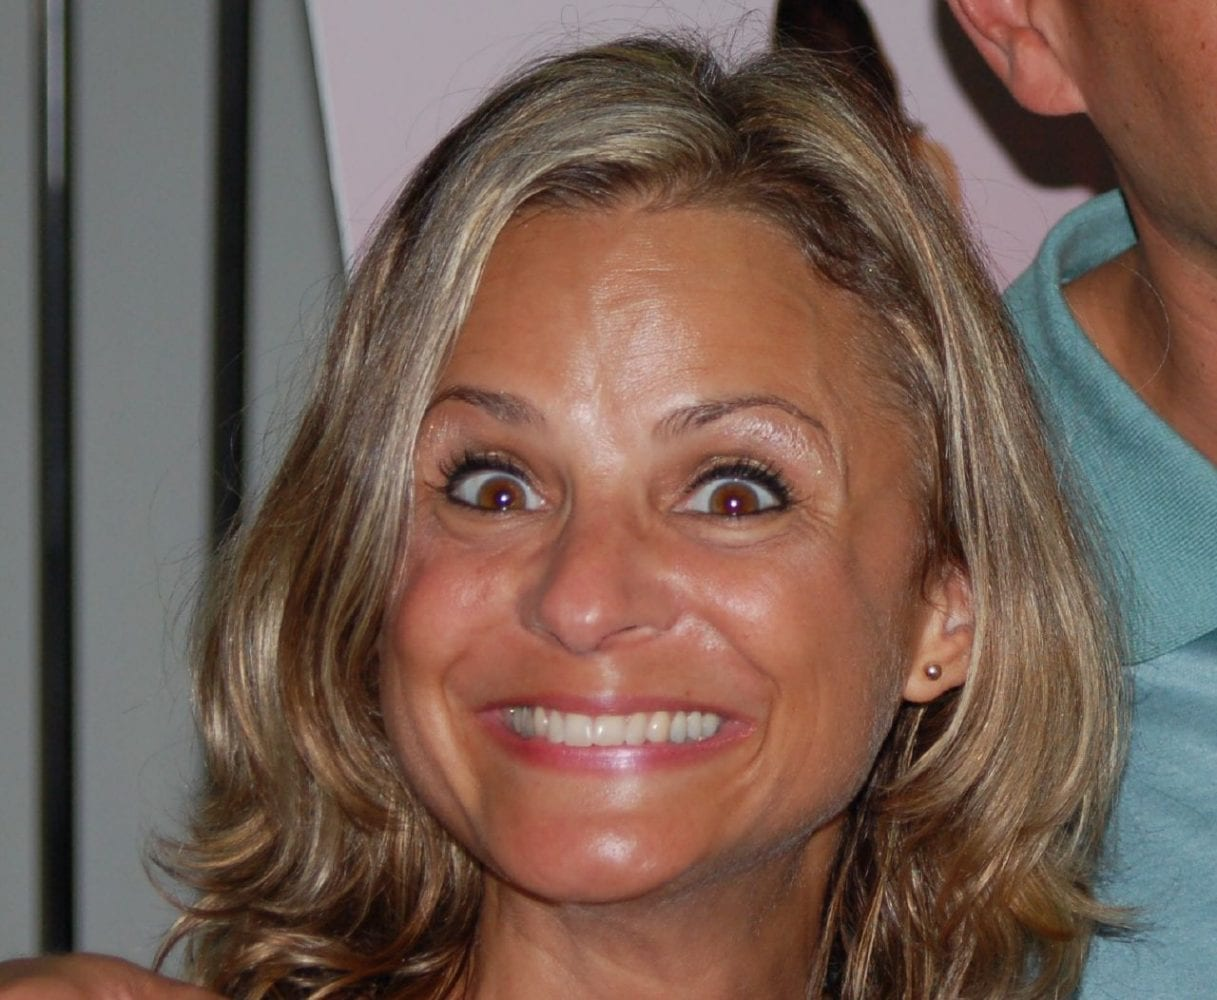 Amy Sedaris grinning maniacally